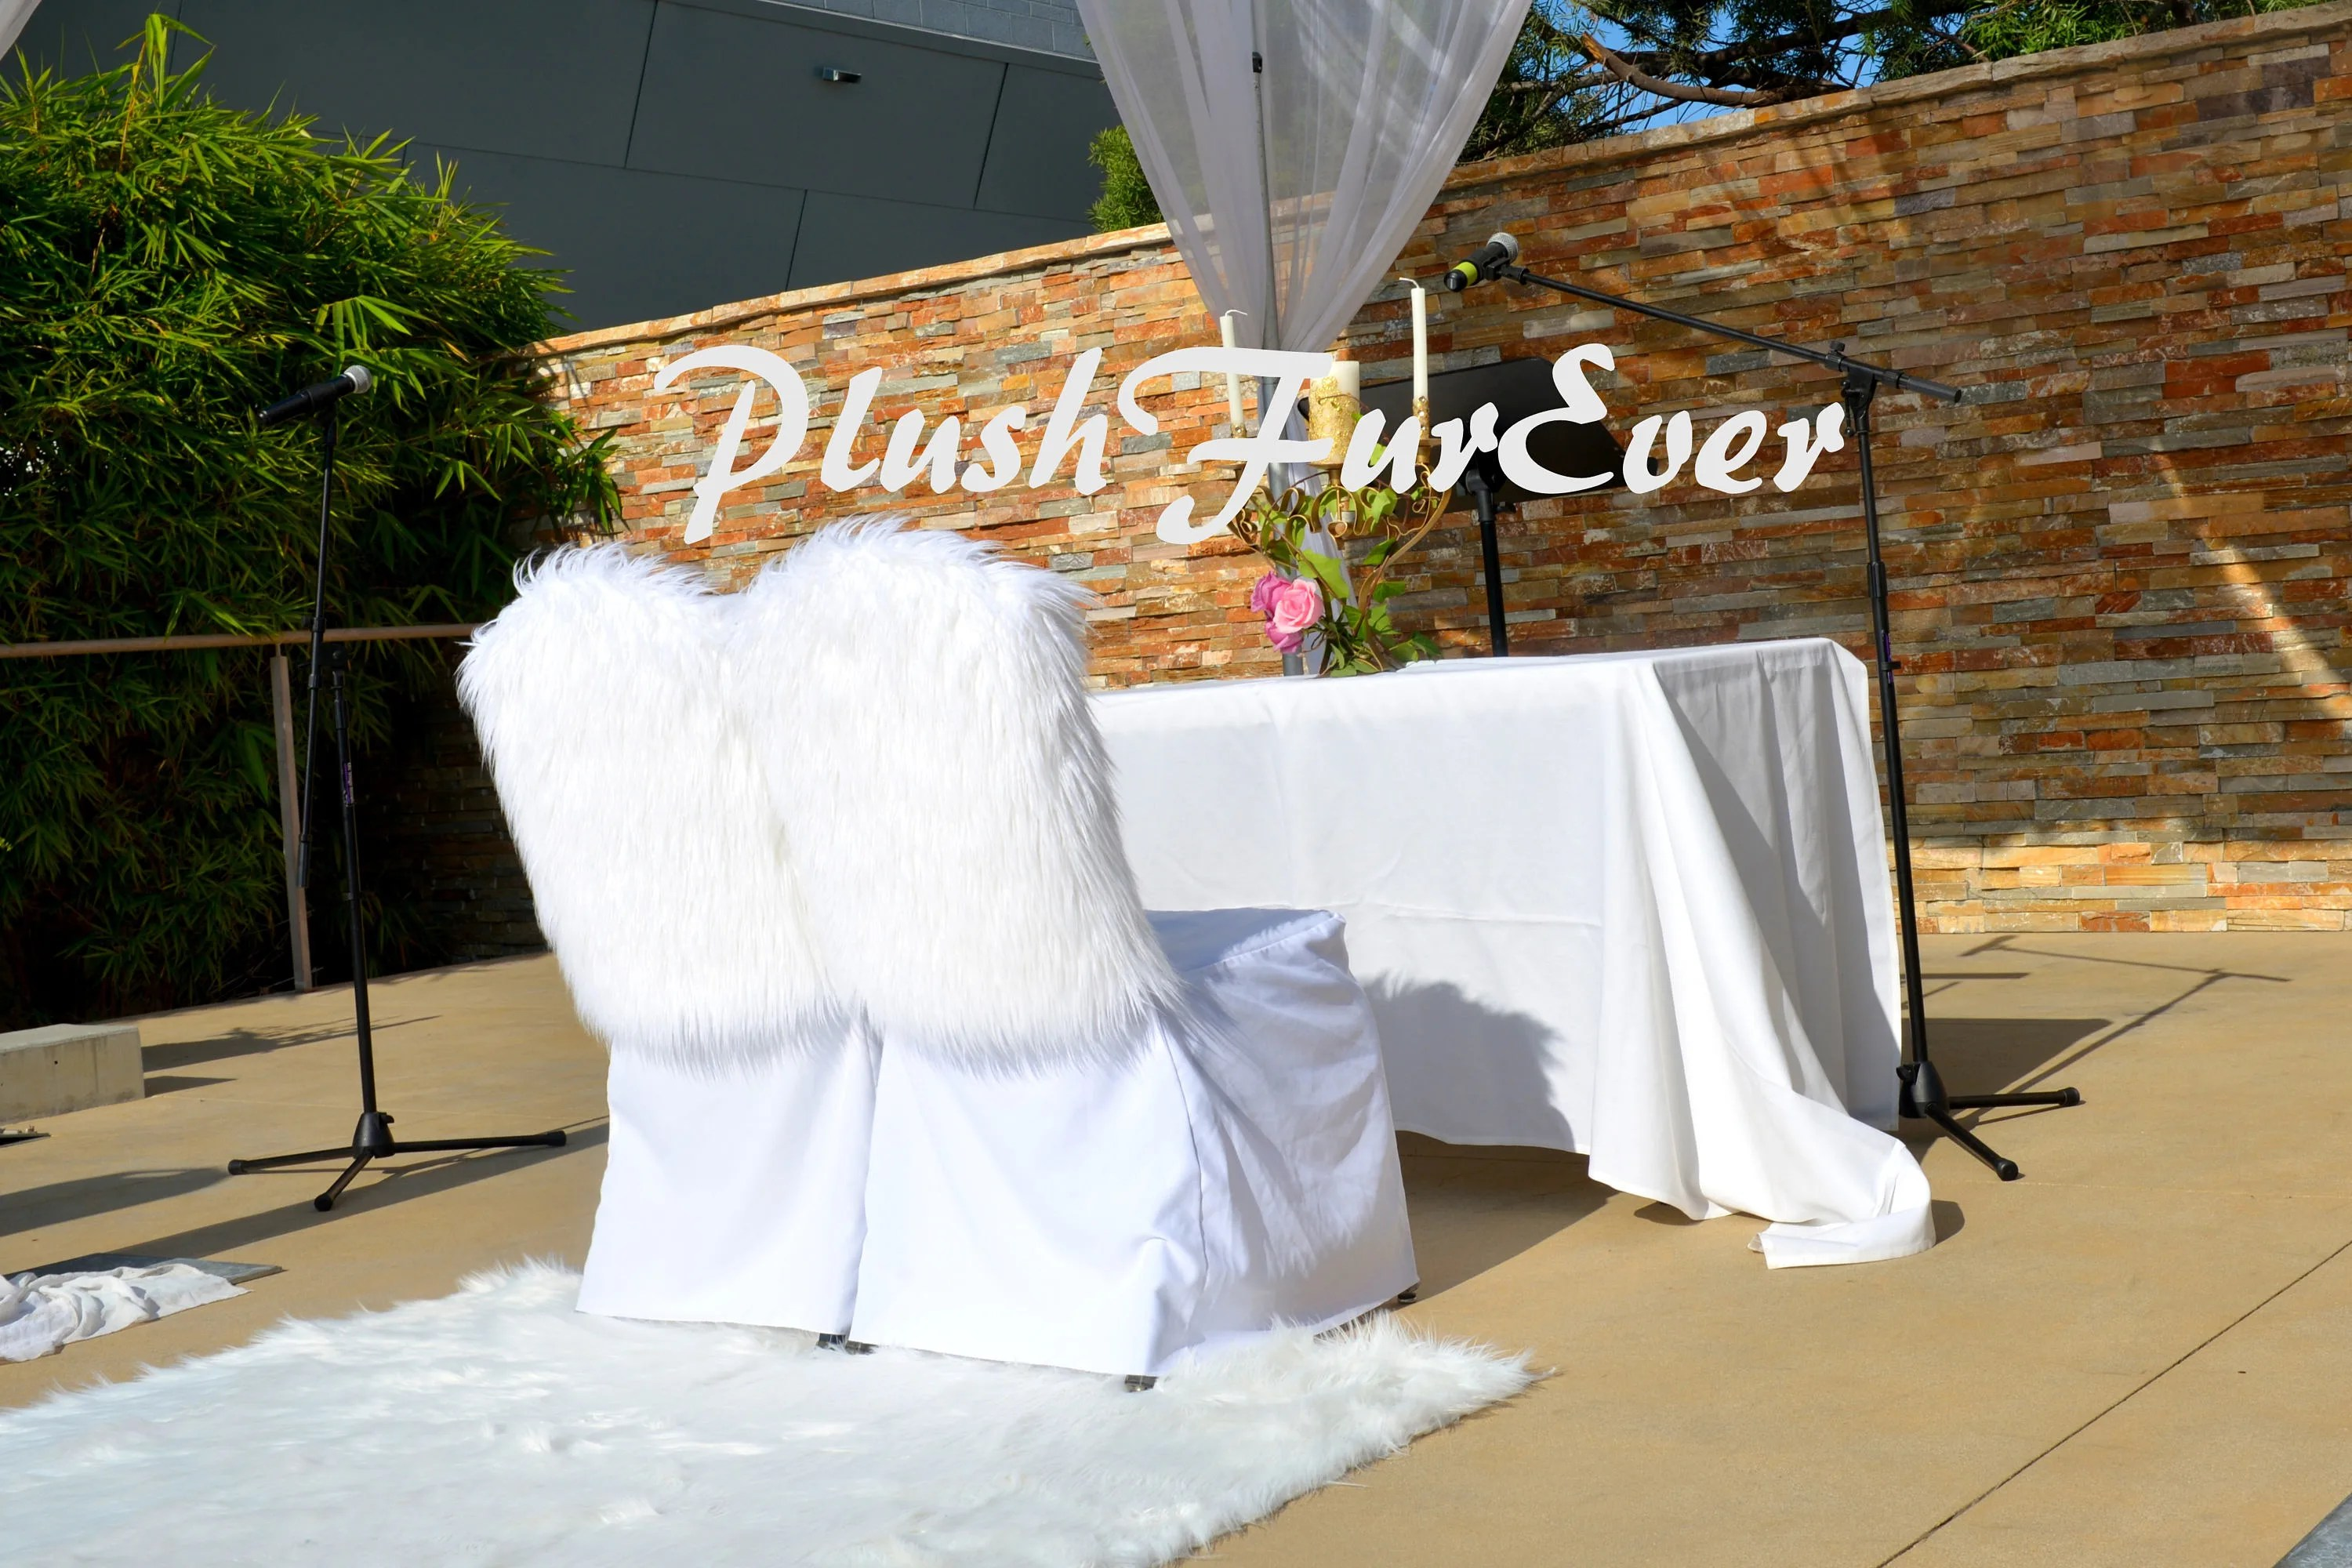 wedding chair covers for bride and groom theater style chairs home cover one pair seats luxurious fancy cute trendy faux fur custom sizes colors available